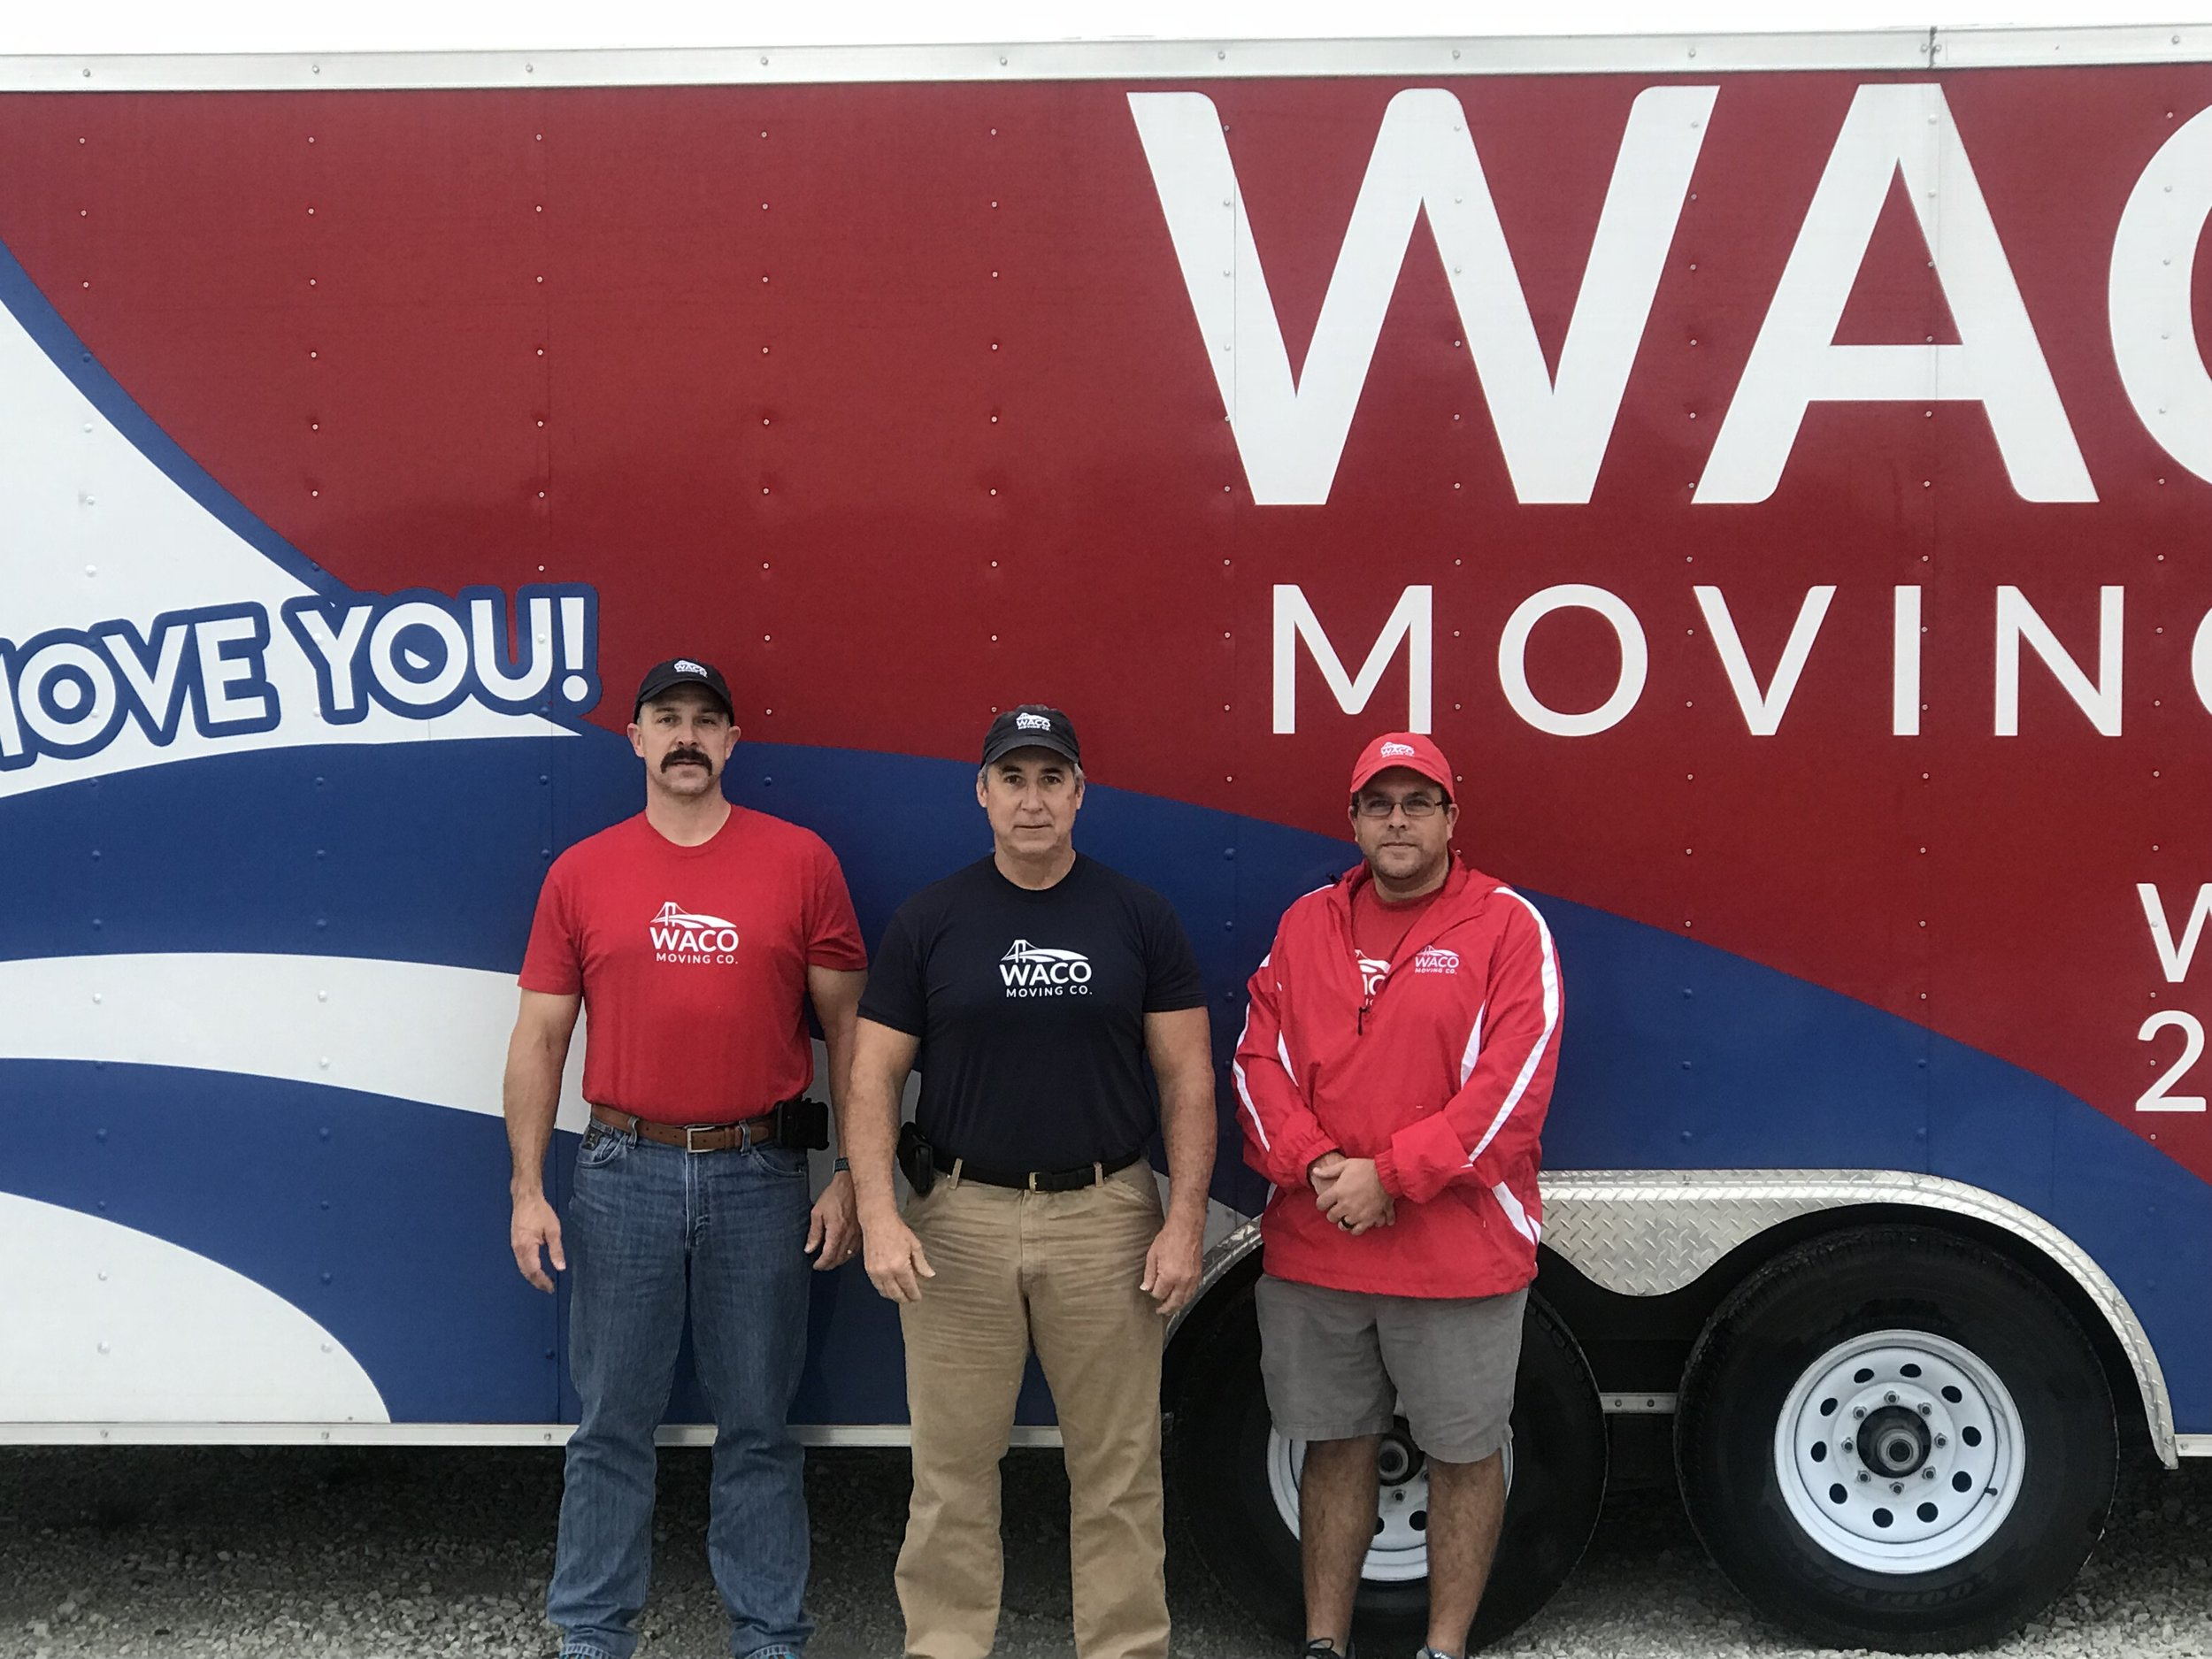 Lieutenant Robert Covey, Battalion Chief John Johnston, and Glen Farell of Waco Moving Company